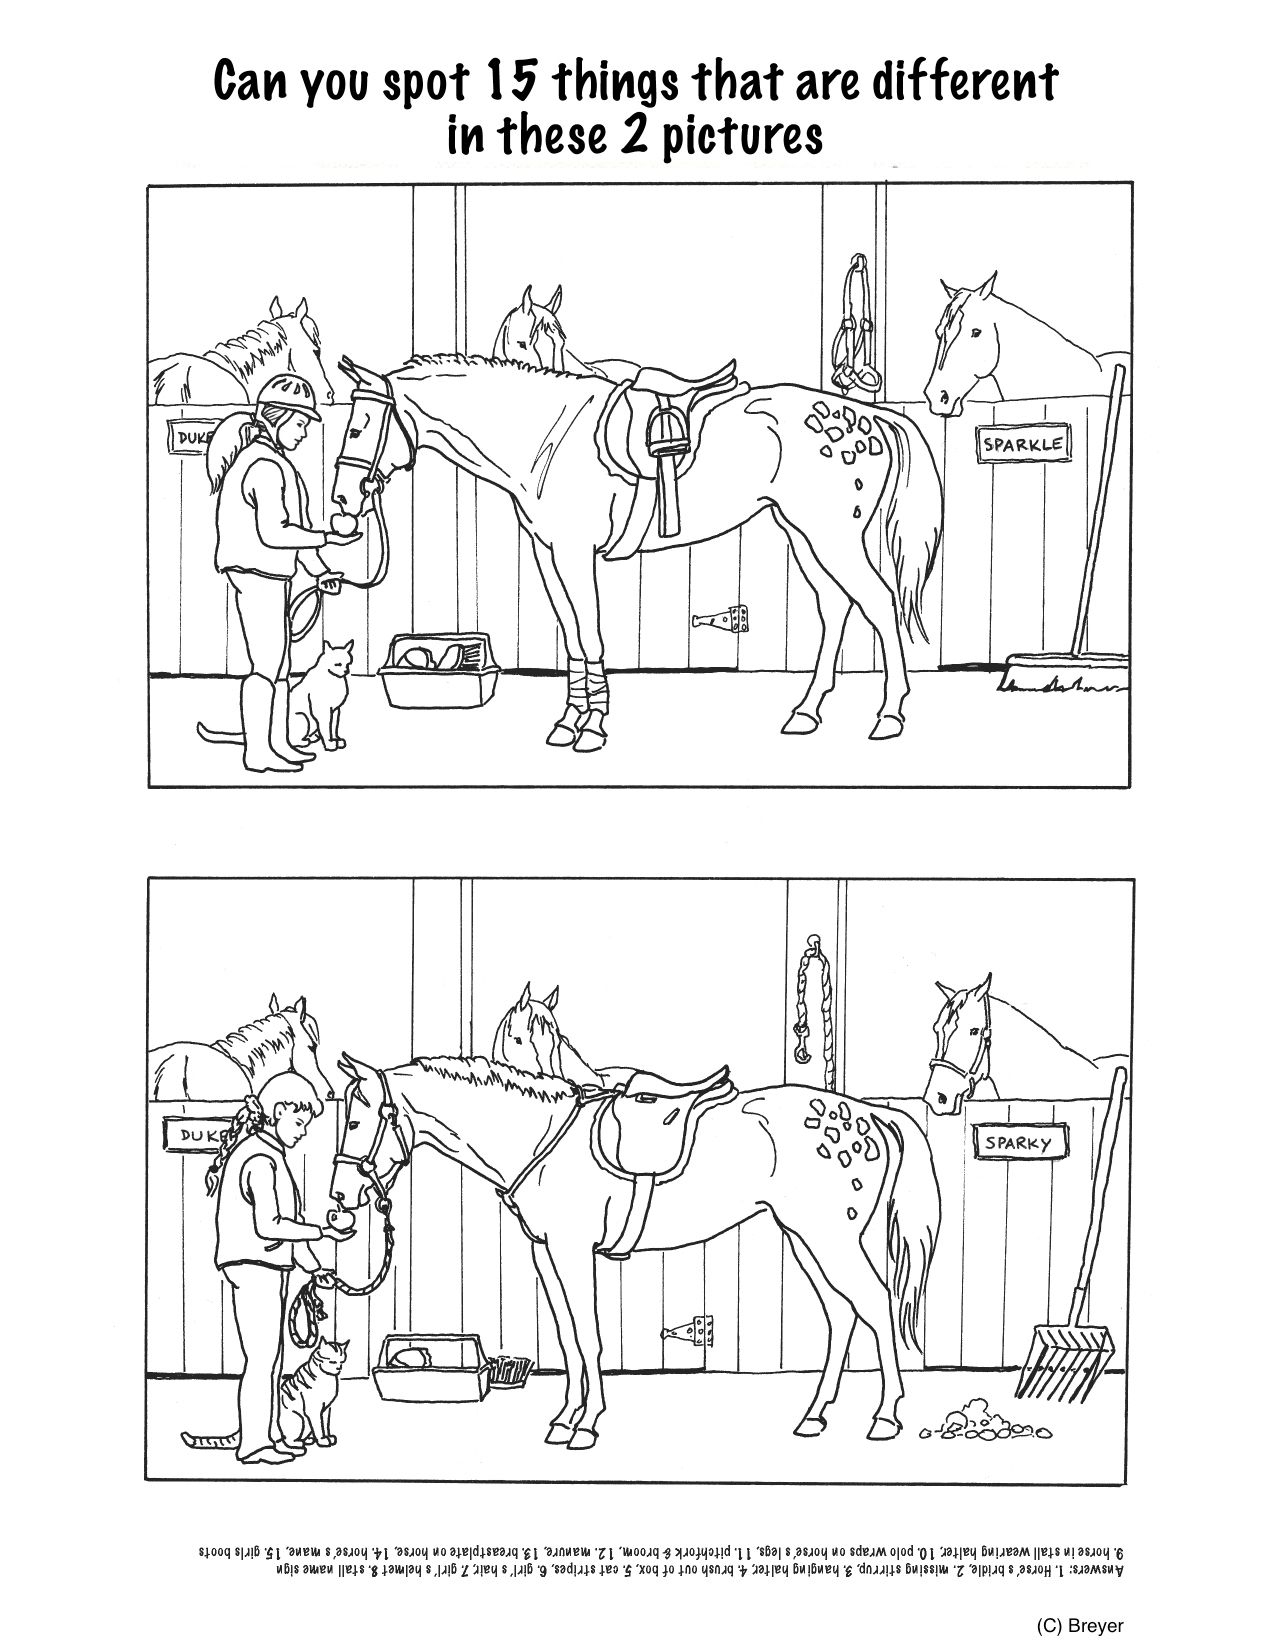 Horse Projects For Kids | Spot The Differences - Stable | Mind's Eye - Printable Horse Puzzles